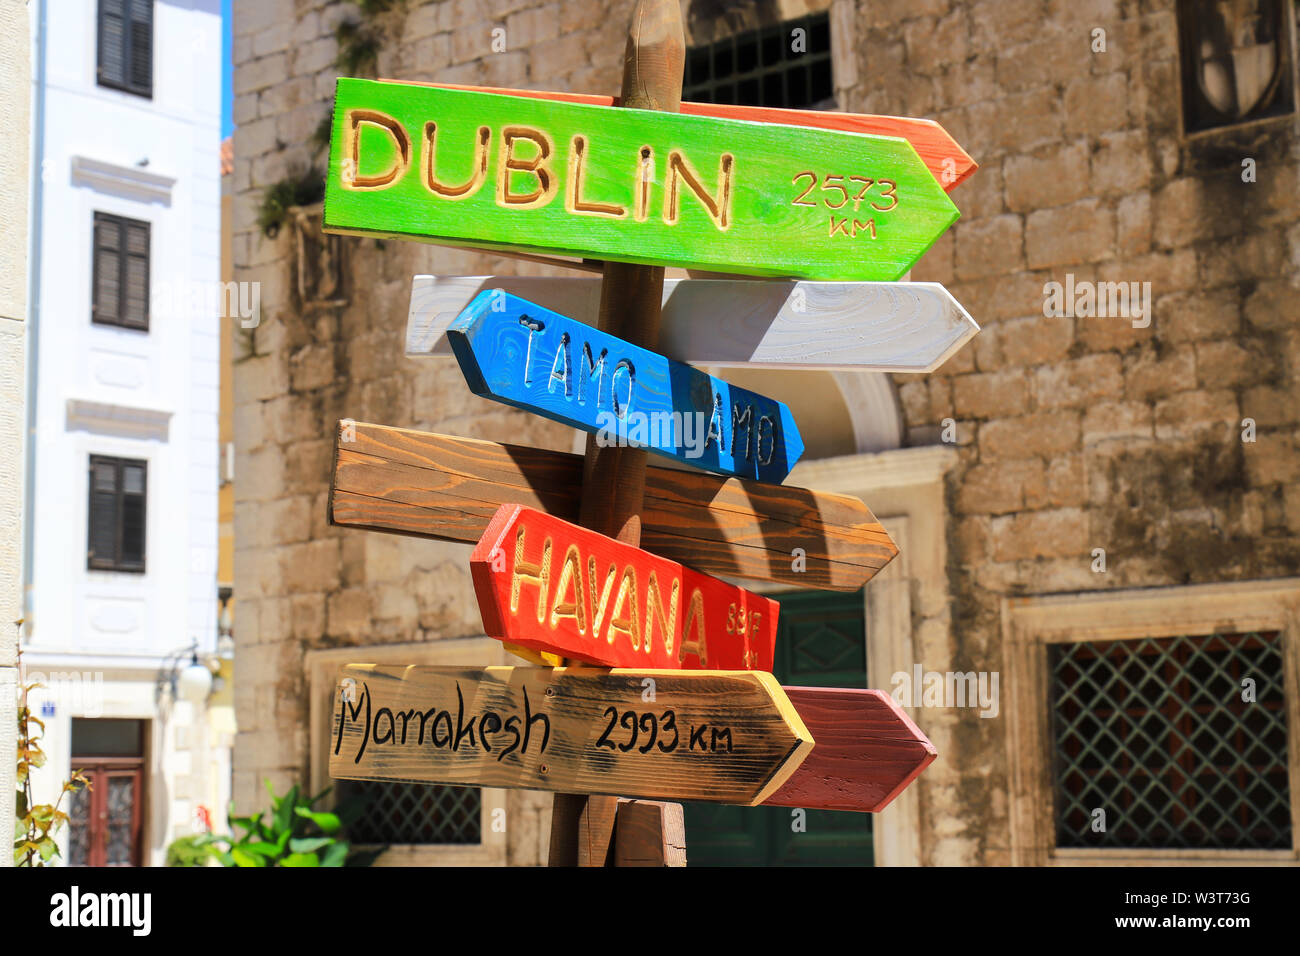 Tourism and travel concept. Colorful wooden road sign pointing directions and distances to different cities and countries - Havana, Dublin, Costa Rica - Stock Image